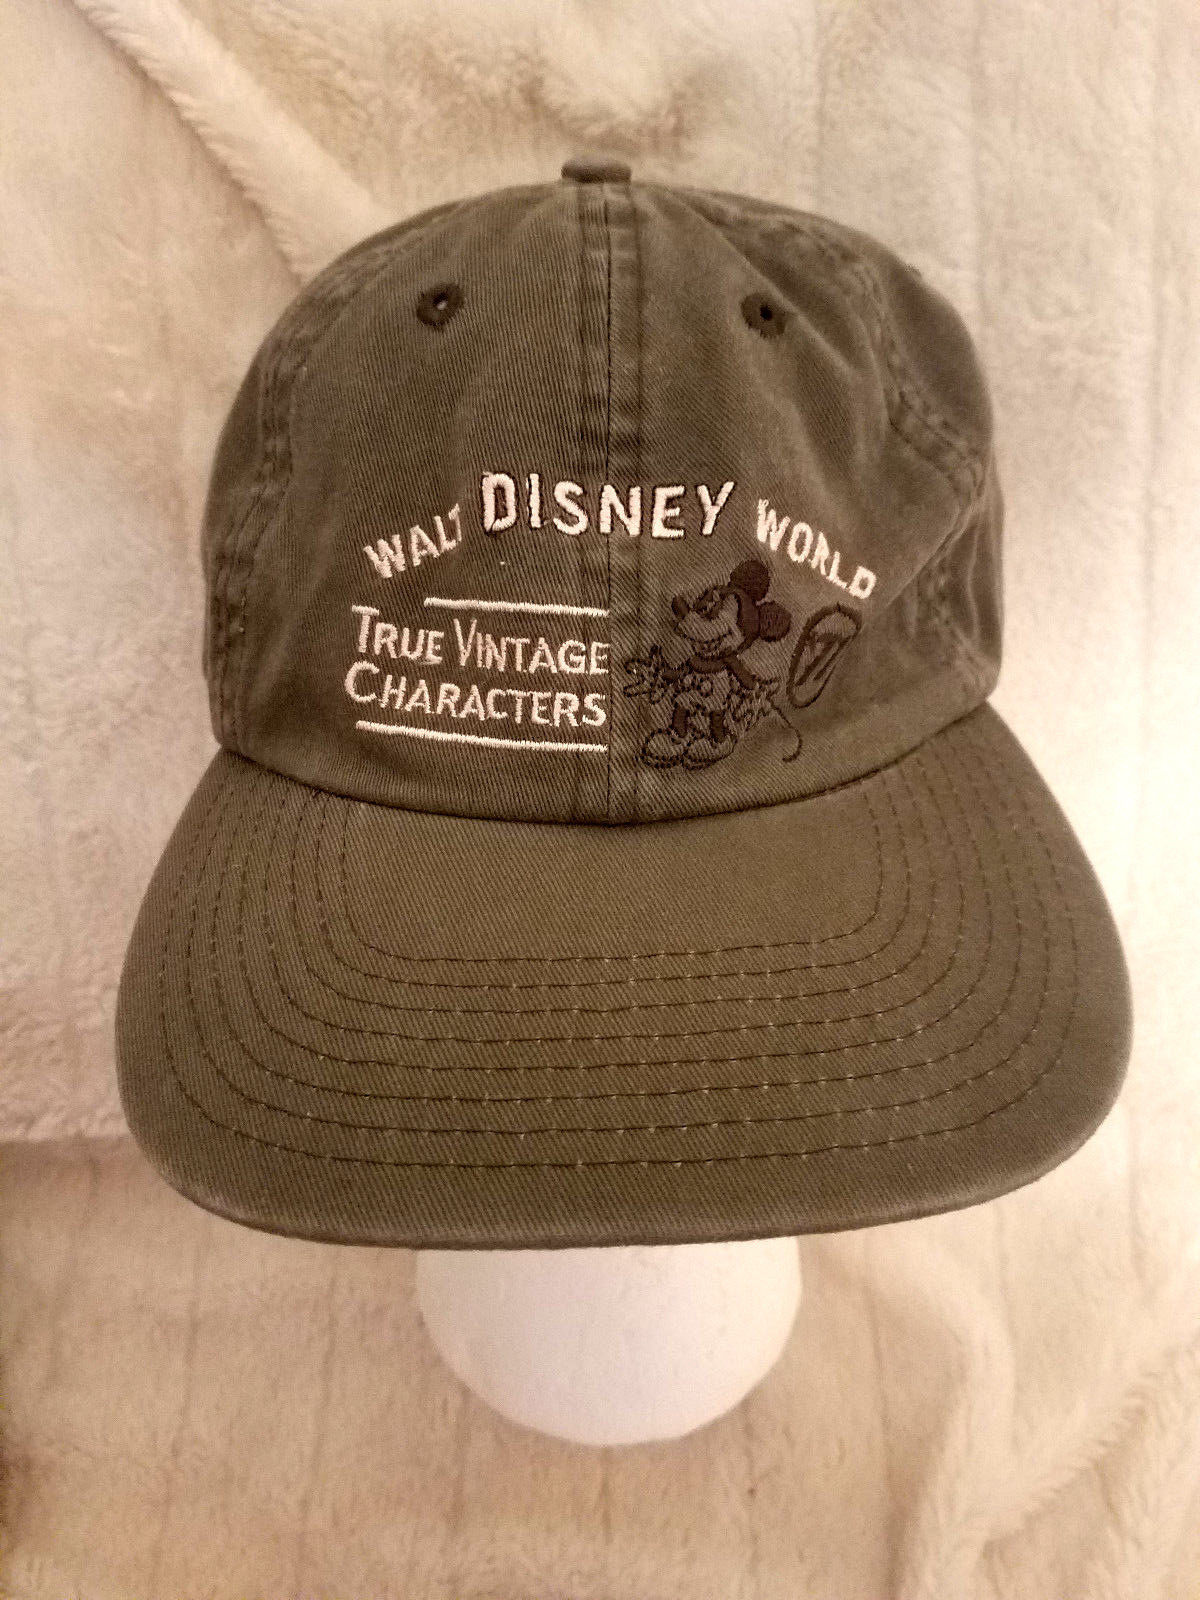 a8c28deb1e2 57. 57. Previous. Walt Disney World True Vintage Characters Mickey 71  Embroidered Baseball Cap Hat